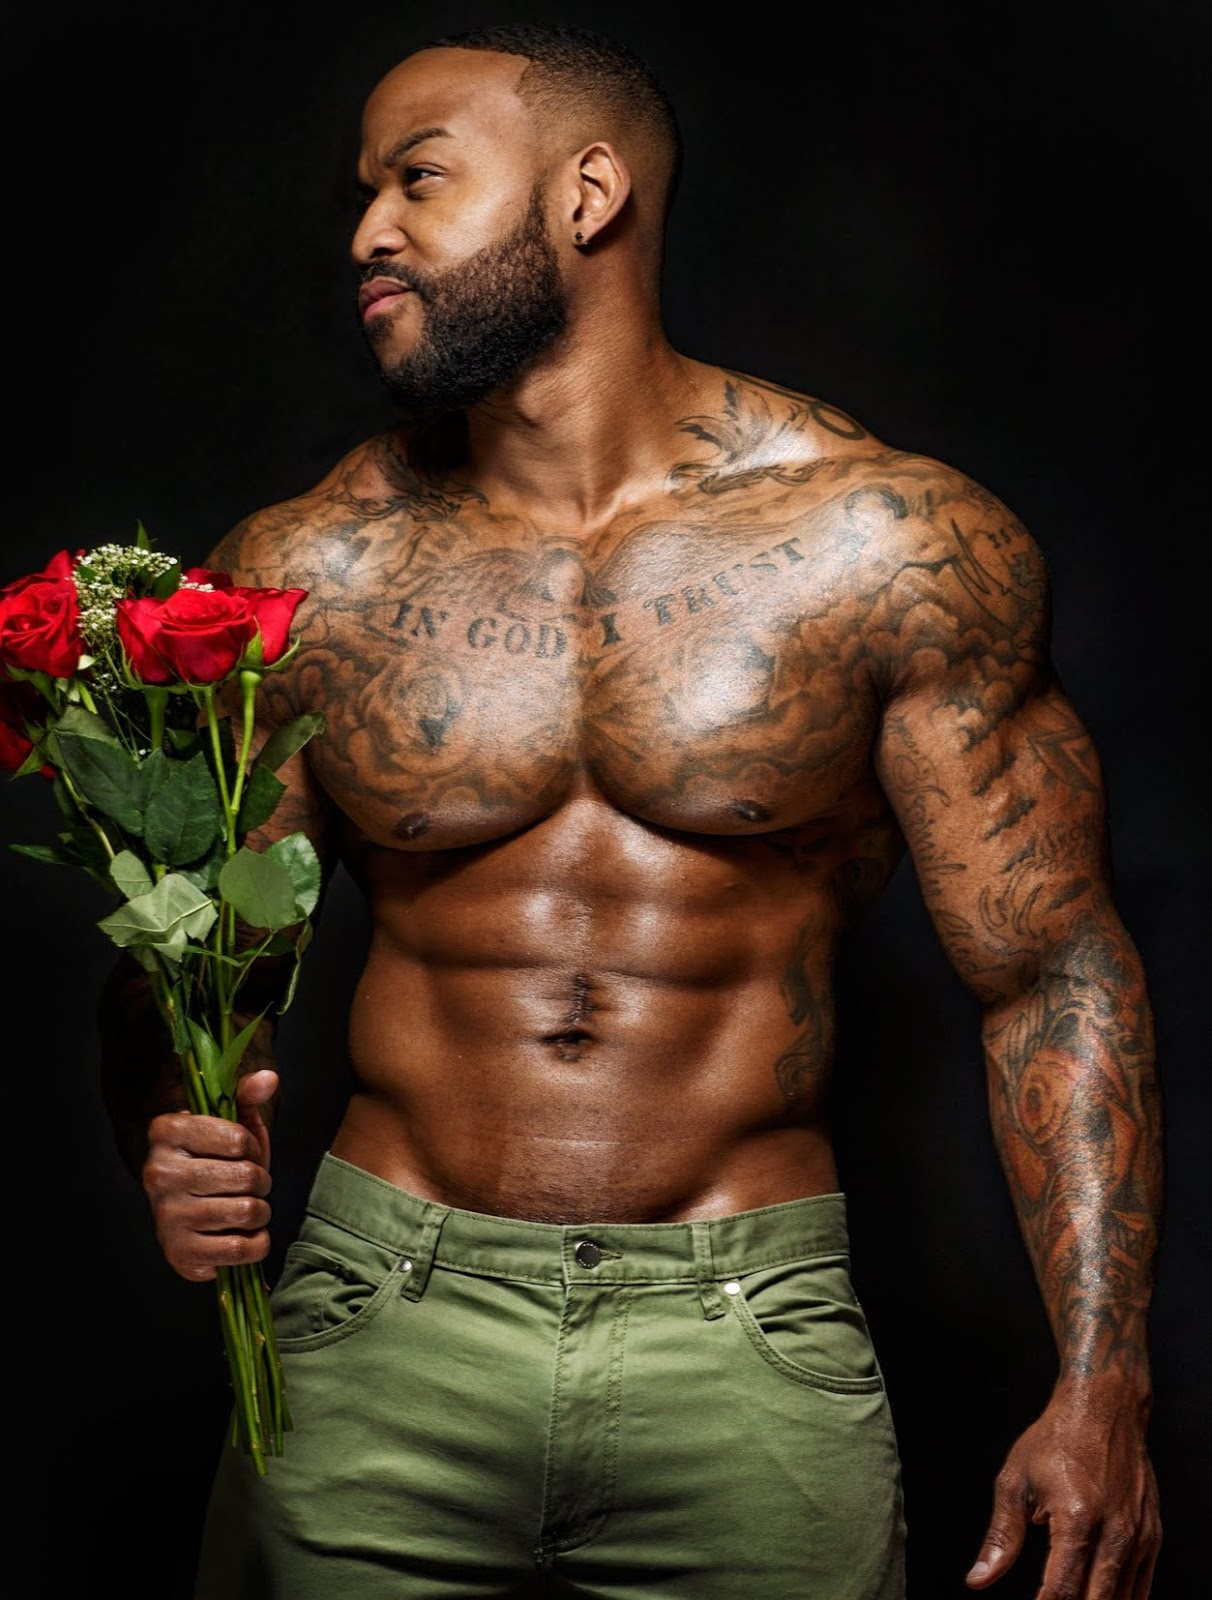 Ideal Most Beautiful Man Naked HD